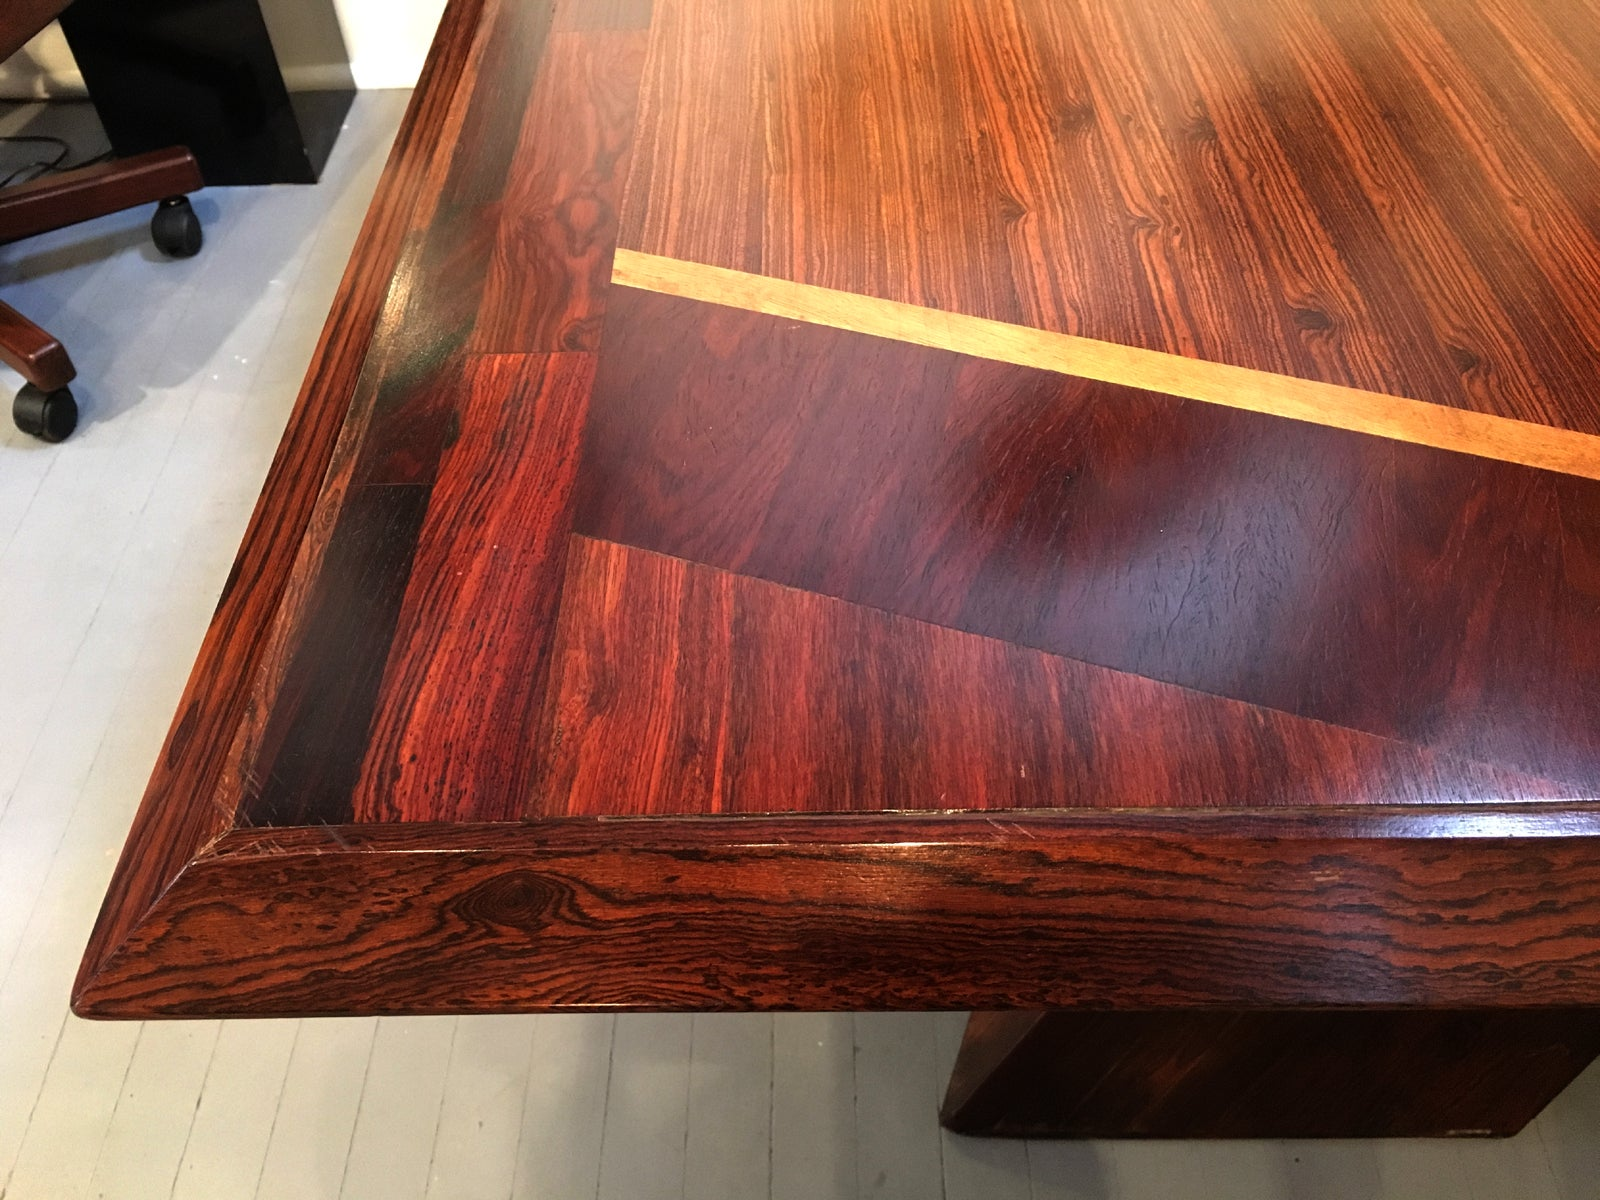 Rosewood diamond desk and chair by don shoemaker at 1stdibs